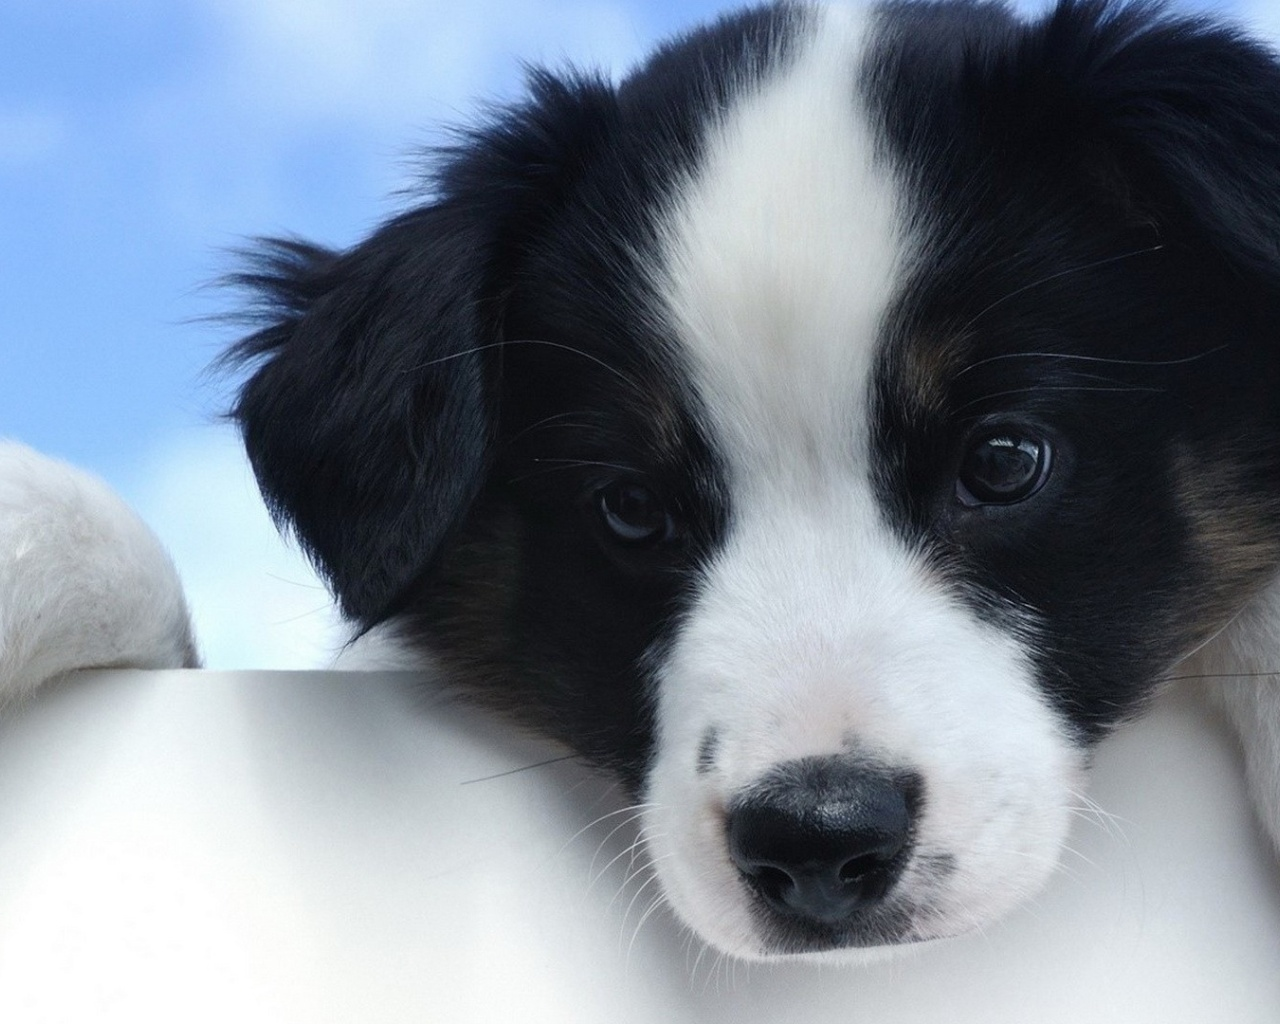 click to free download the wallpaper--Cute Animals Image, White and Black Puppy, Wide Open Eyes, Shall be Impressive 1280X1024 free wallpaper download